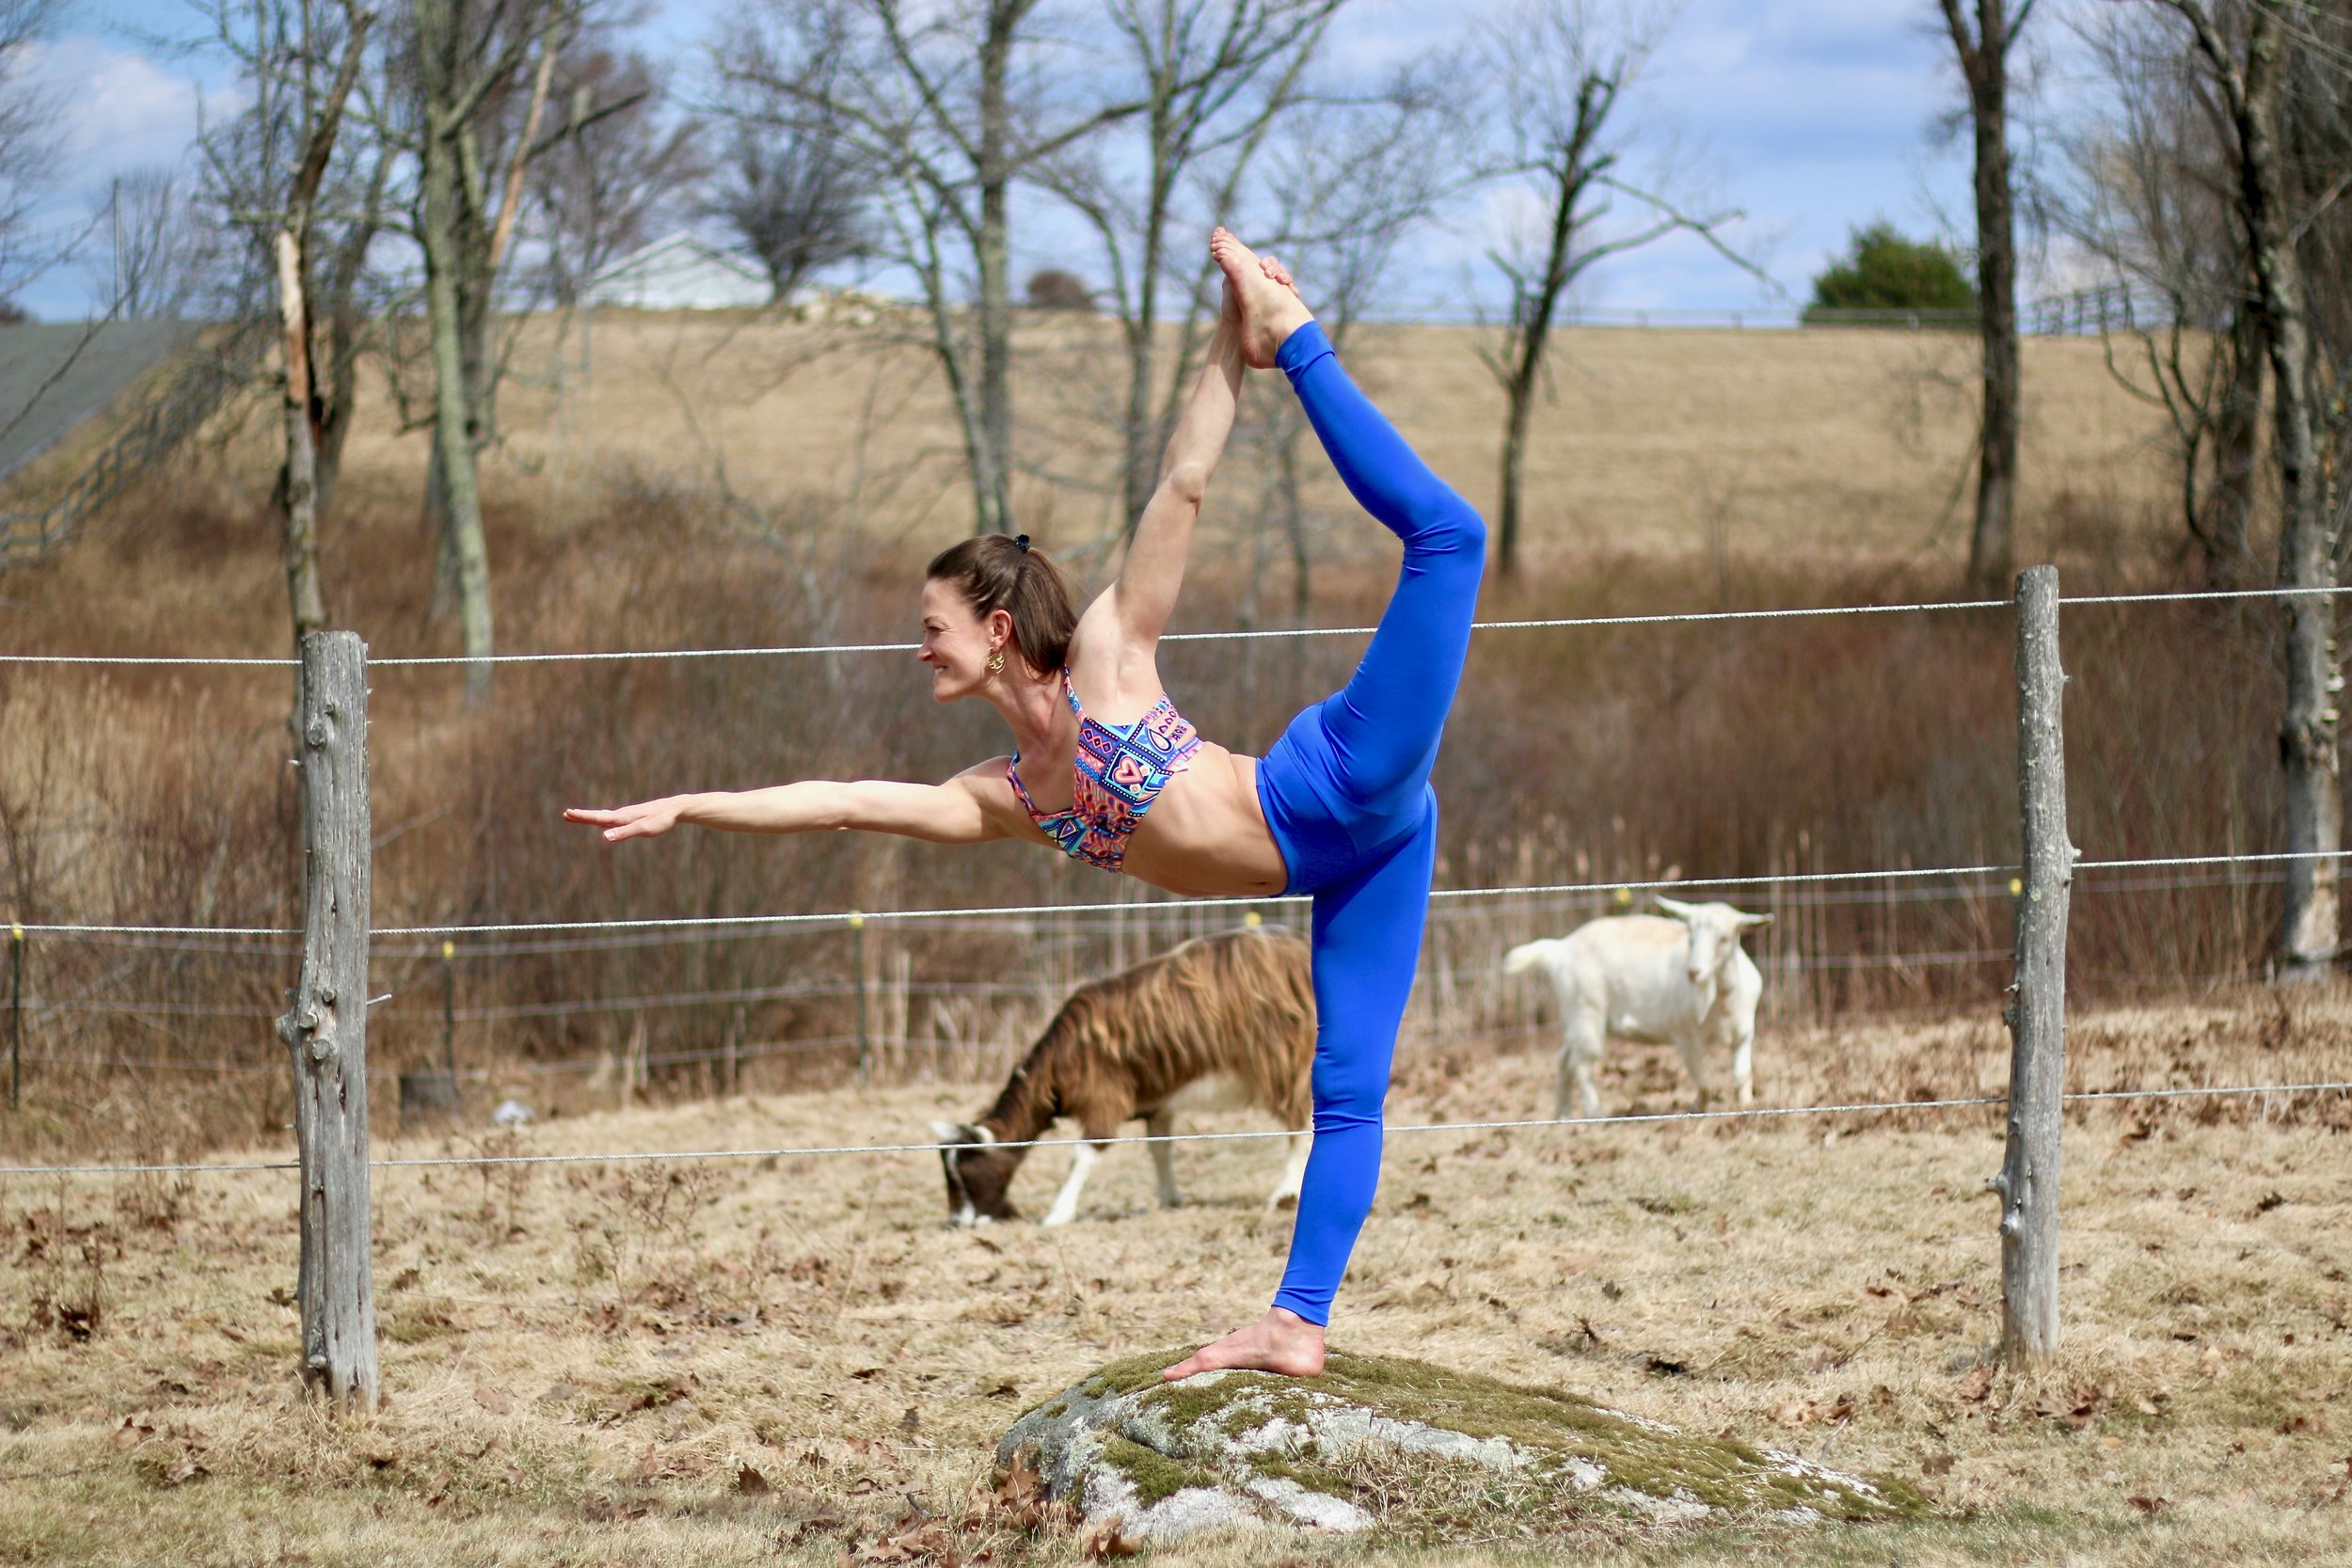 On the regular, - you can find me at home in Goshen, CT living that #farmlife, hanging out with amazing peeps, and teaching badass yogis how to reach their highest potential!